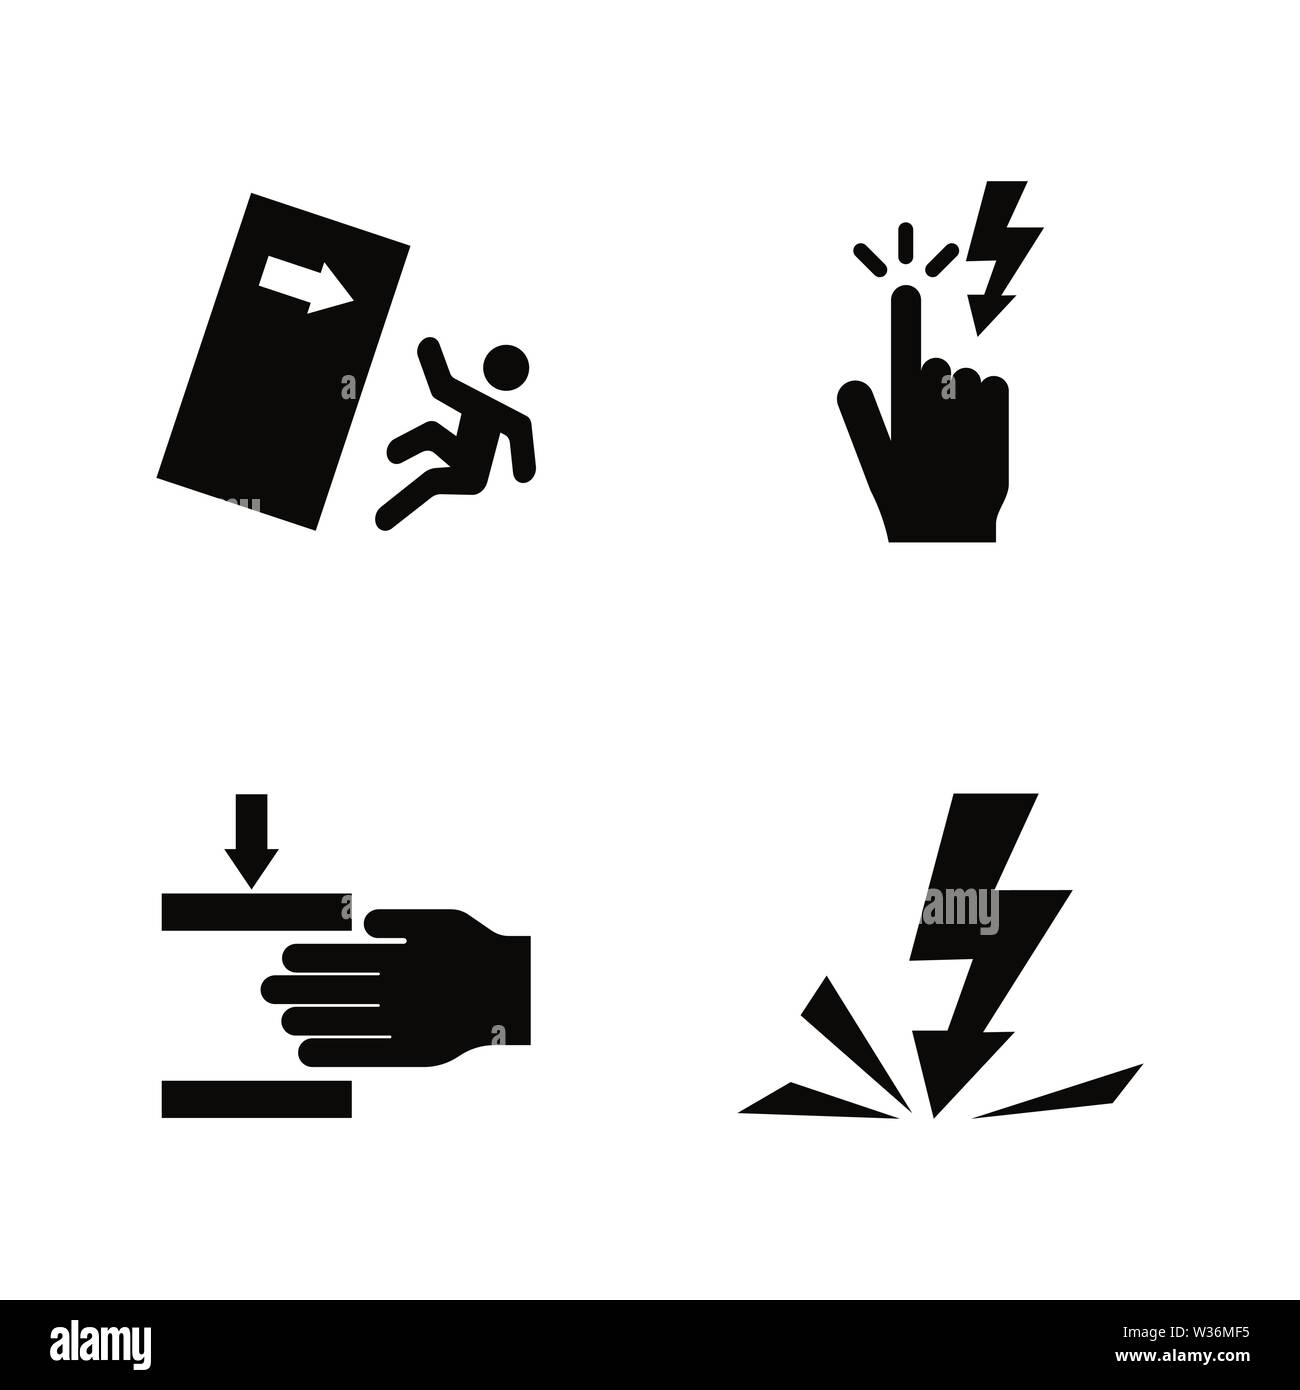 Warning Signs, Danger. Simple Related Vector Icons Set for Video, Mobile Apps, Web Sites, Print Projects and Your Design. Warning Signs, Danger icon B - Stock Vector